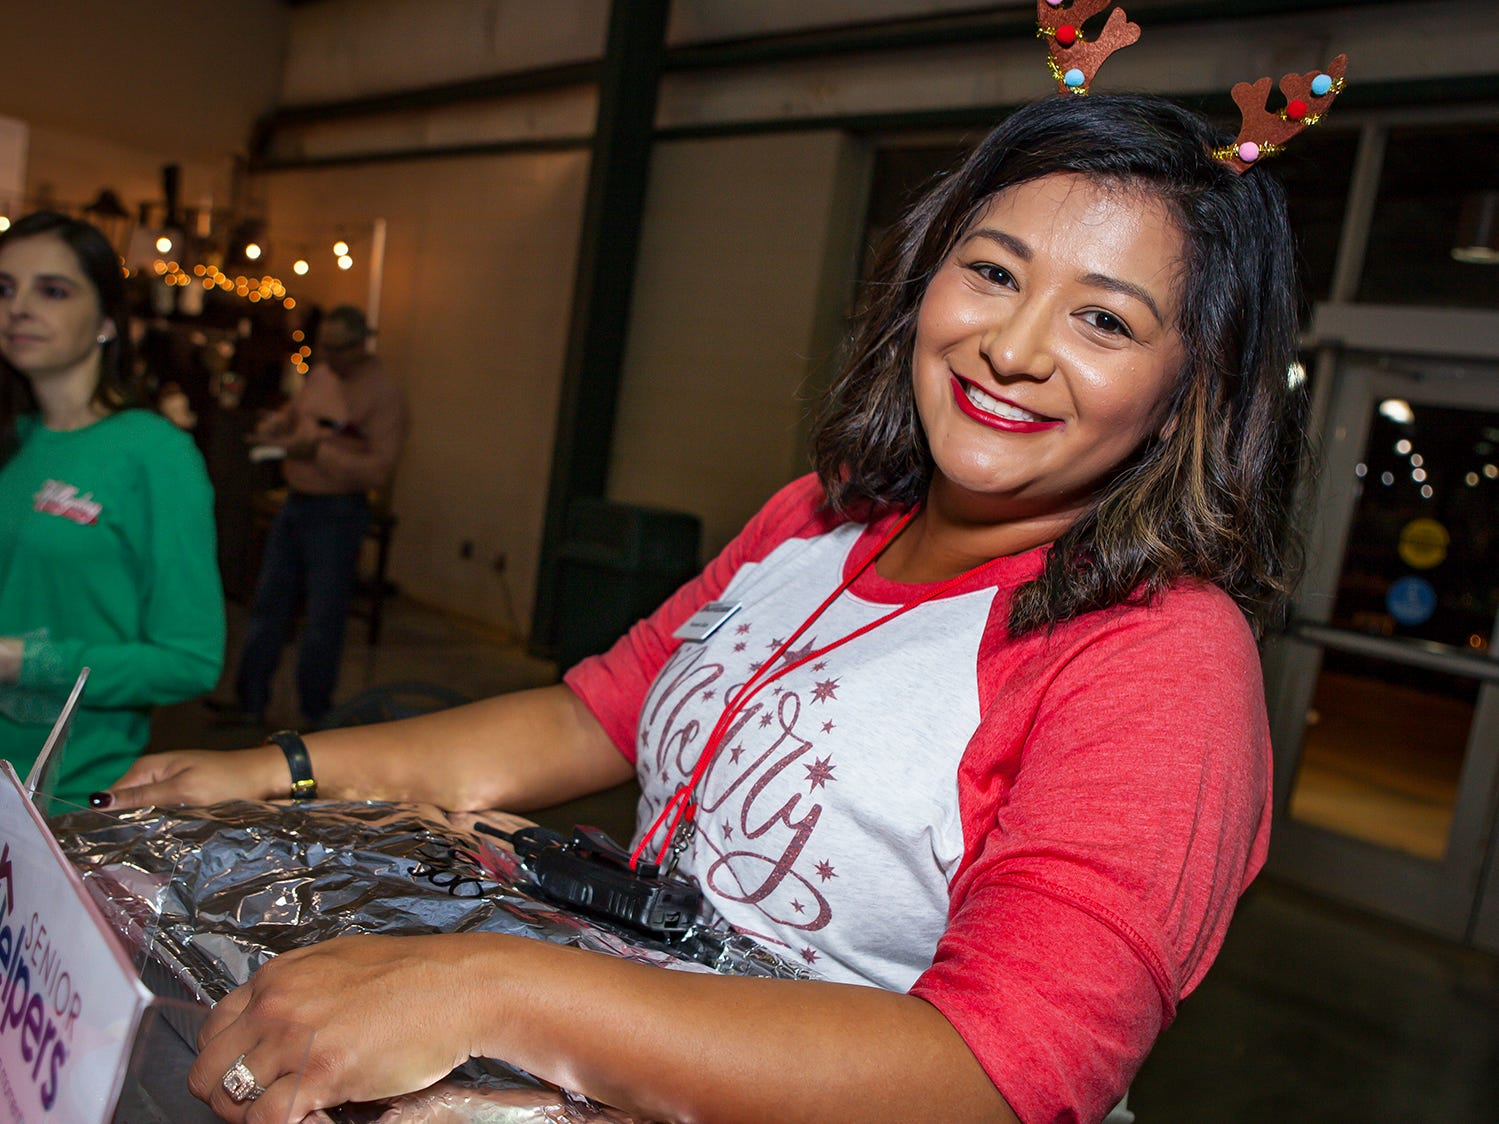 Francela Salas at Mistletoe & Martinis on Friday, Nov. 30, the preview party for the Junior League of Murfreesboro's 2018 Hollyday Marketplace.